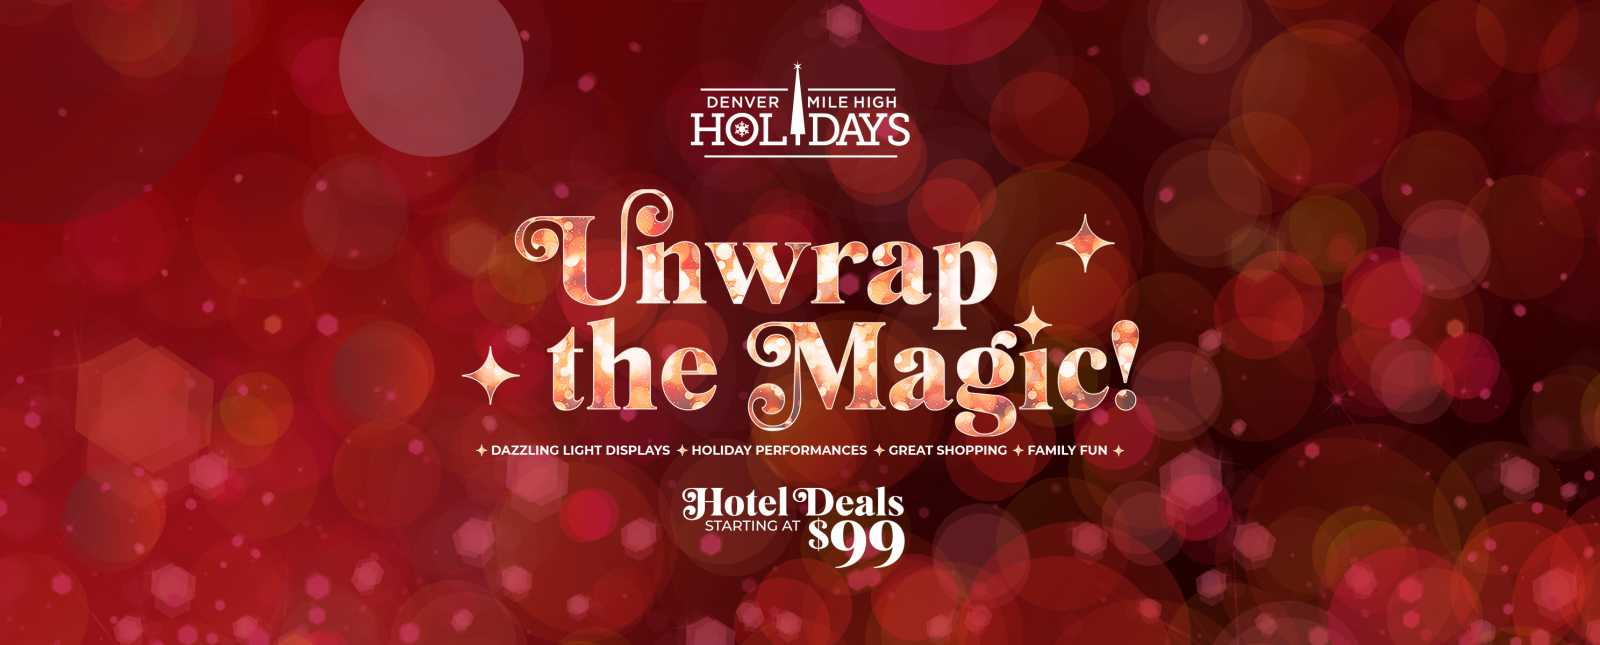 Unwrap the Magic - dazzling light displays, holiday performances, great shopping and family fun. Hotel deals start at 99 dollars - new years eve excluded